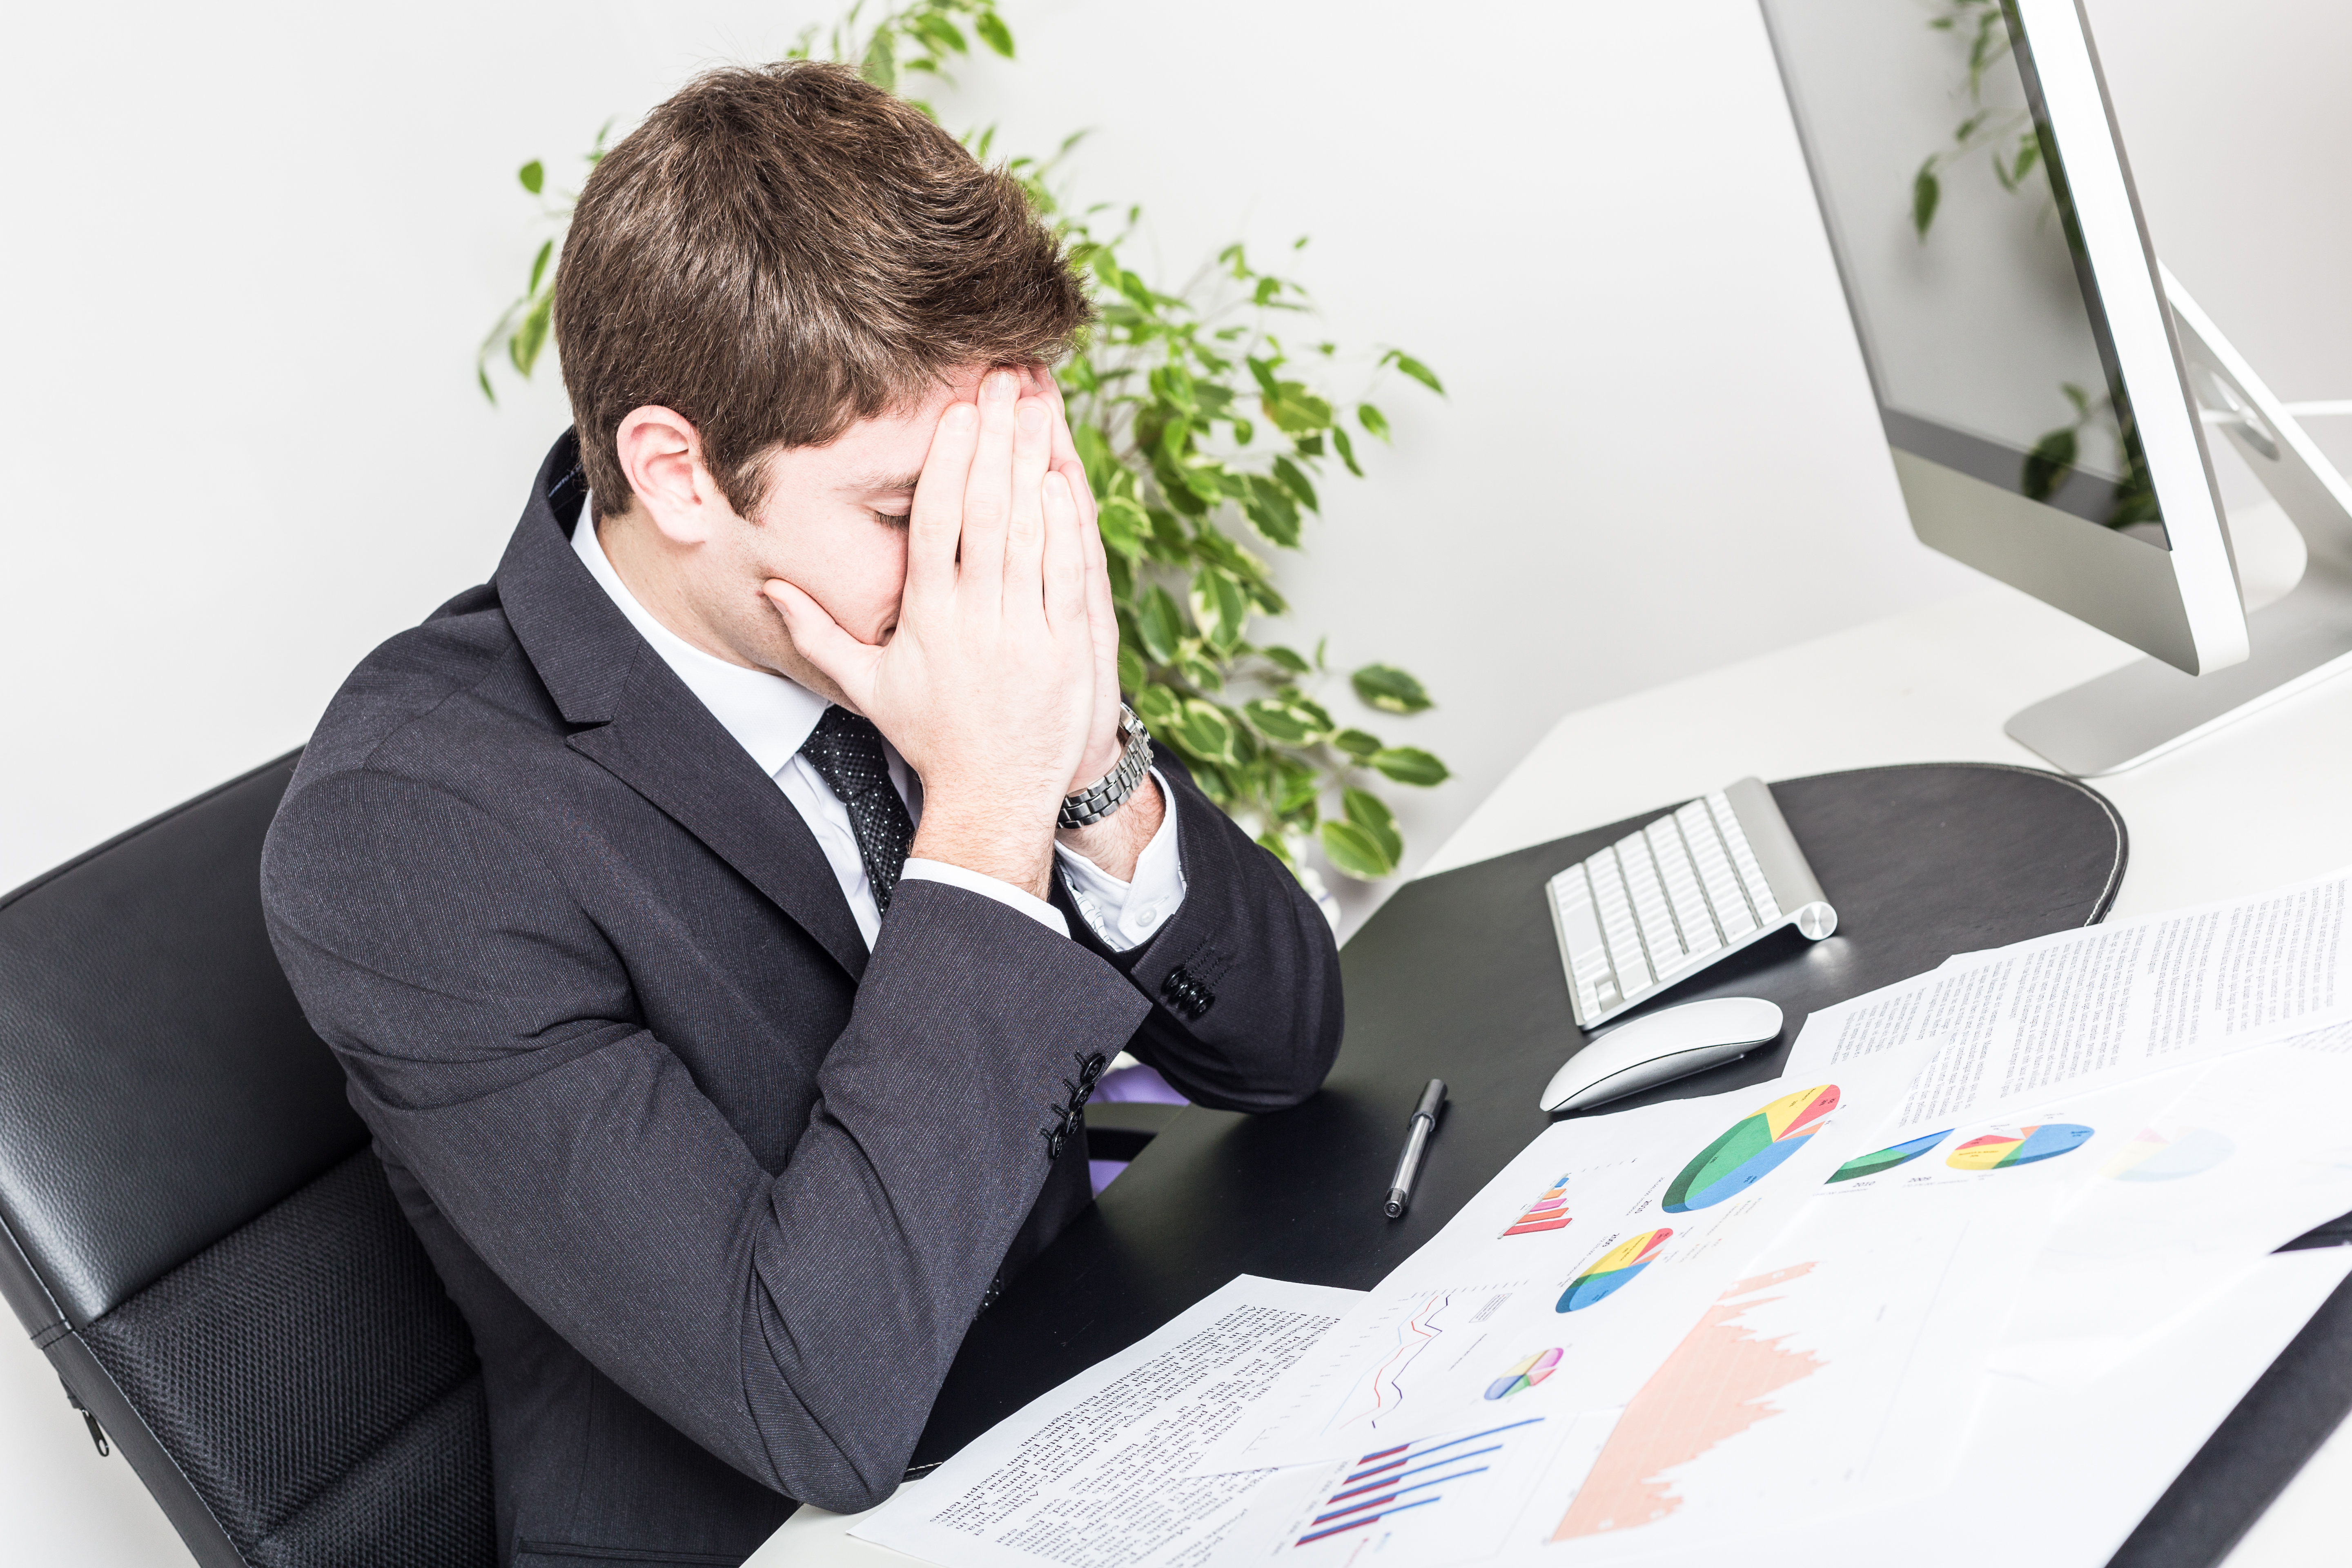 10 mistakes unhappy project managers make daily